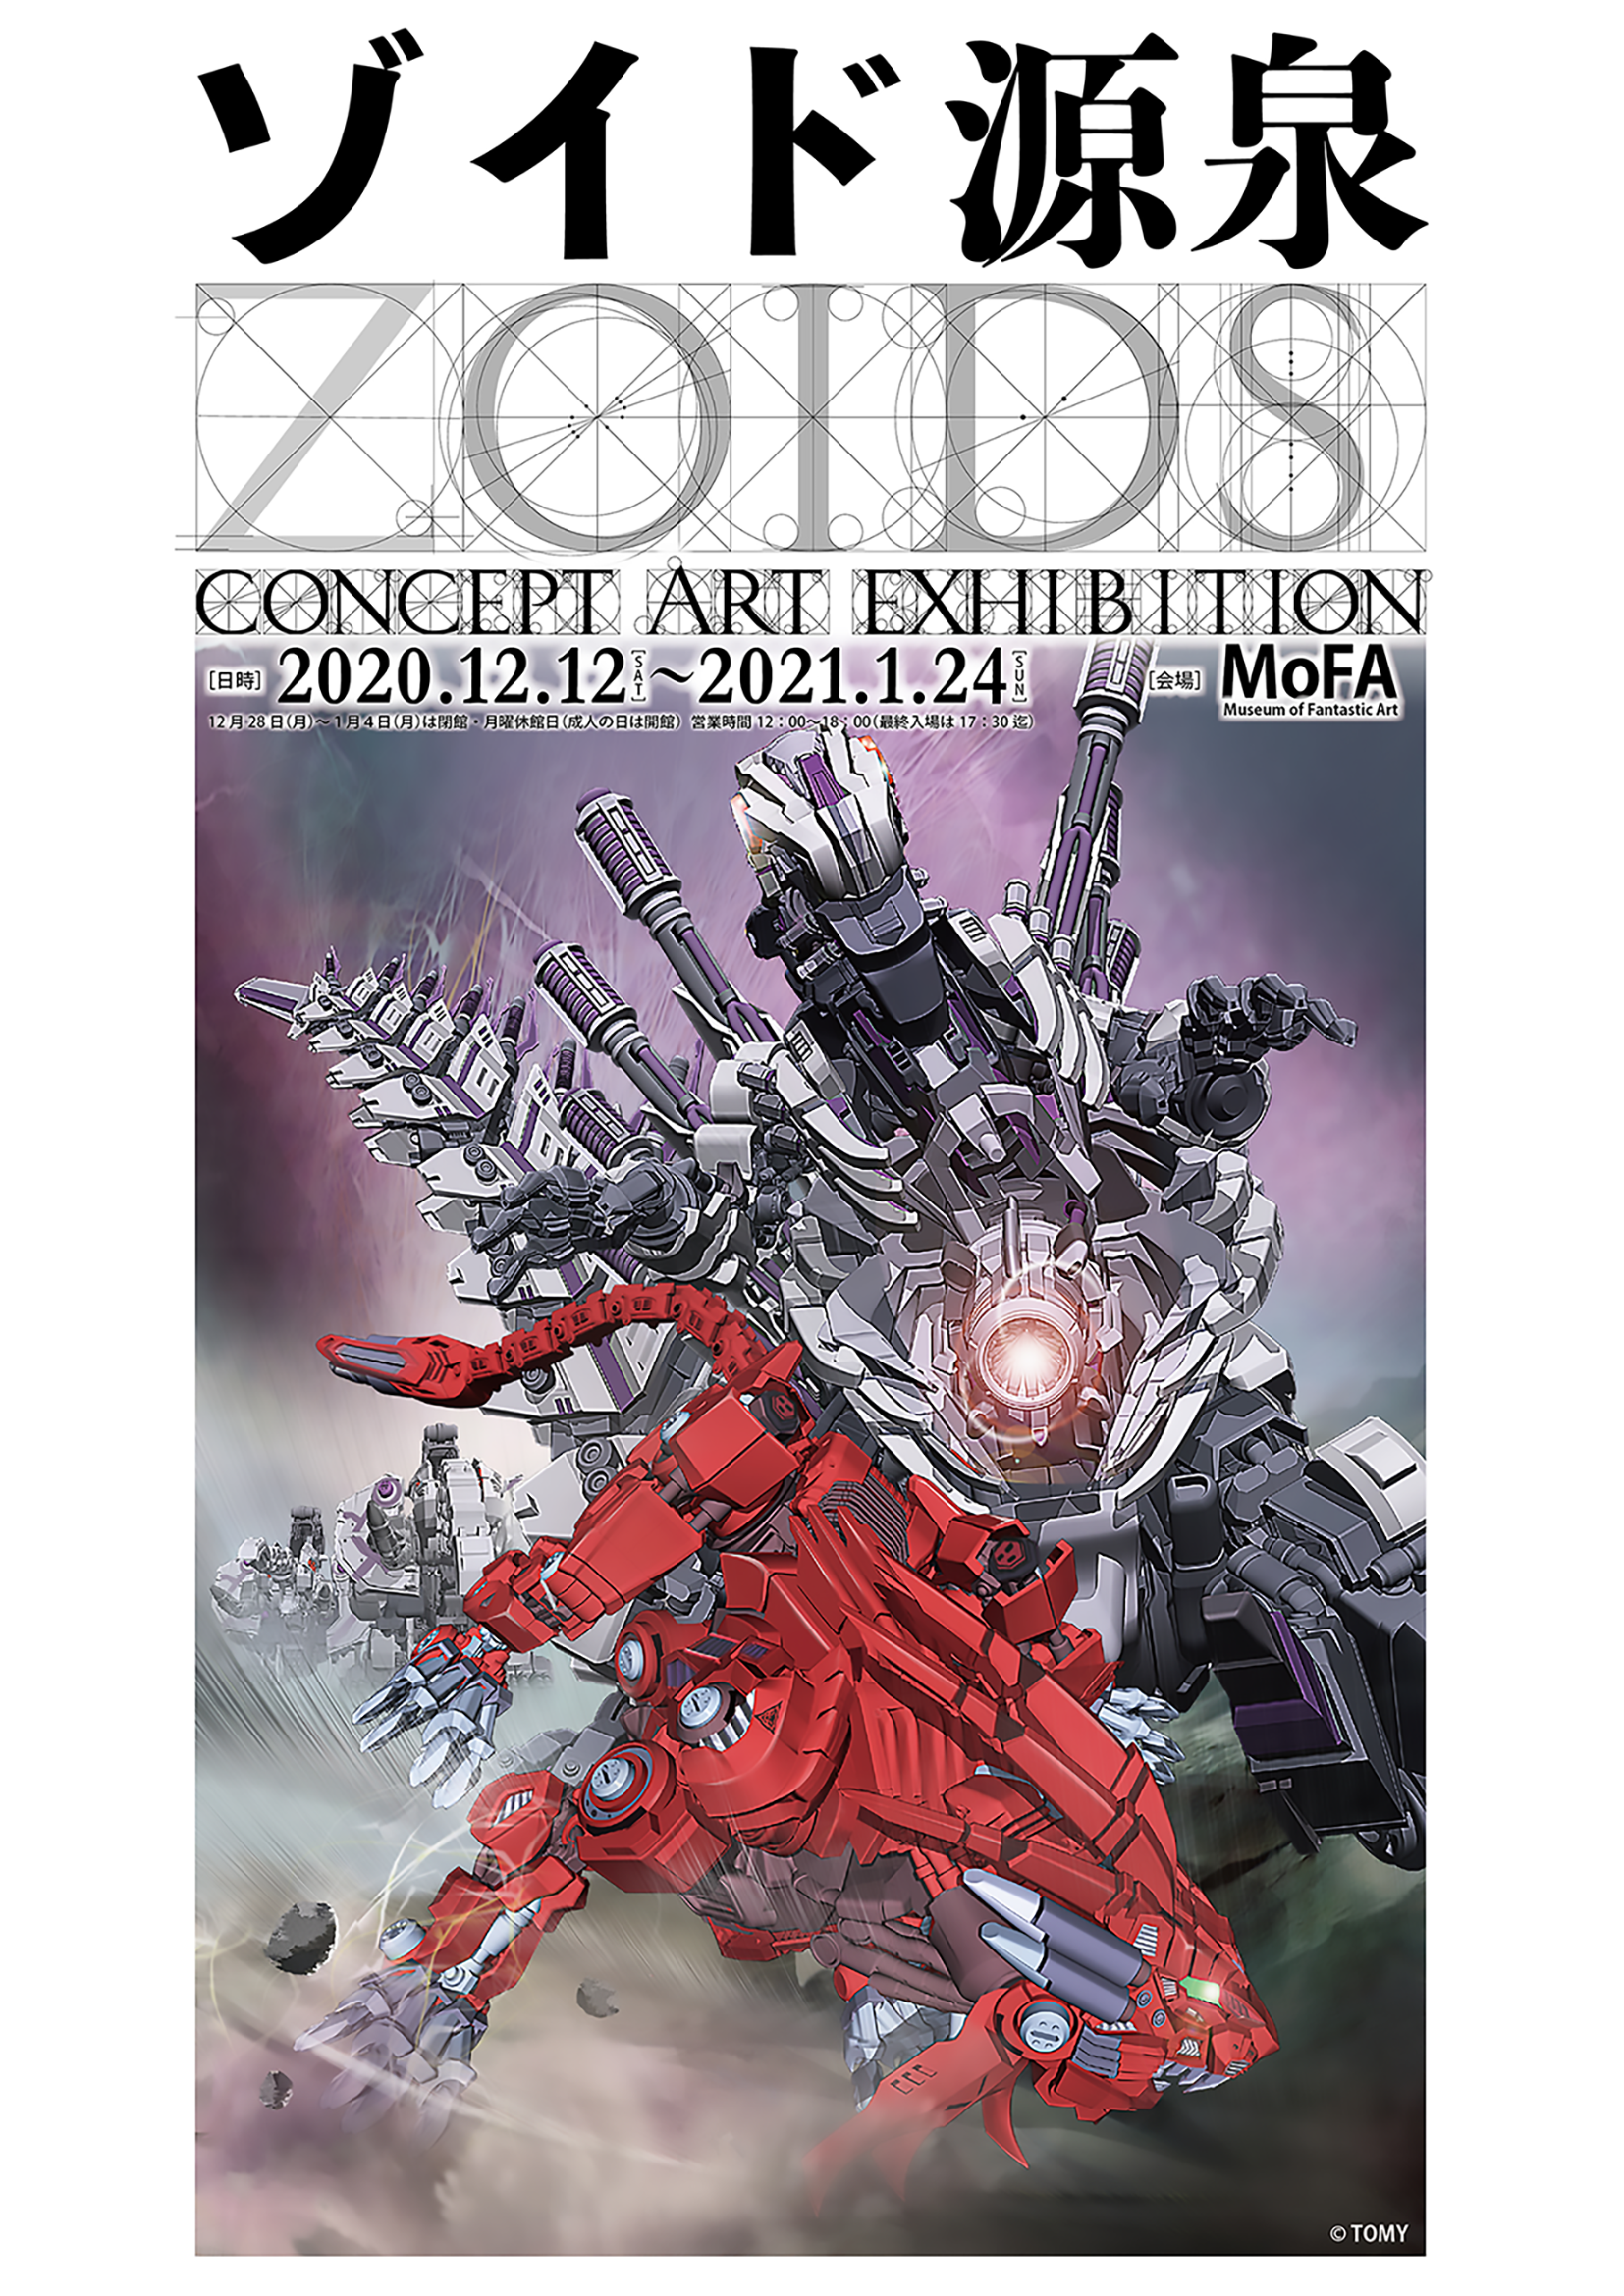 ゾイド源泉<br> -ZOIDS CONCEPT ART EXHIBITION-